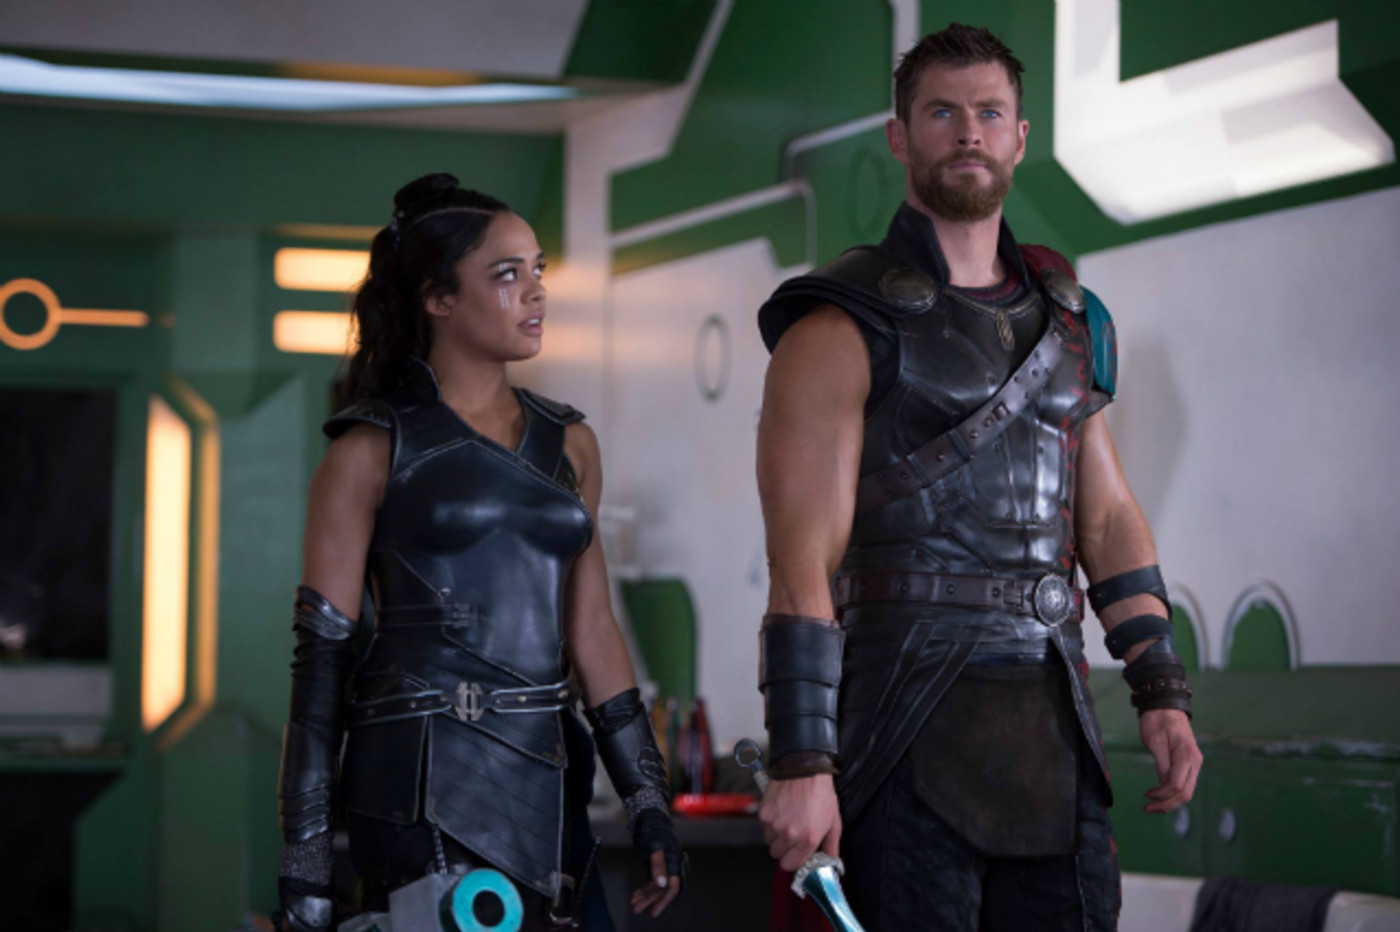 Tessa Thompson and Chris Hemsworth in 'Thor: Ragnarok'